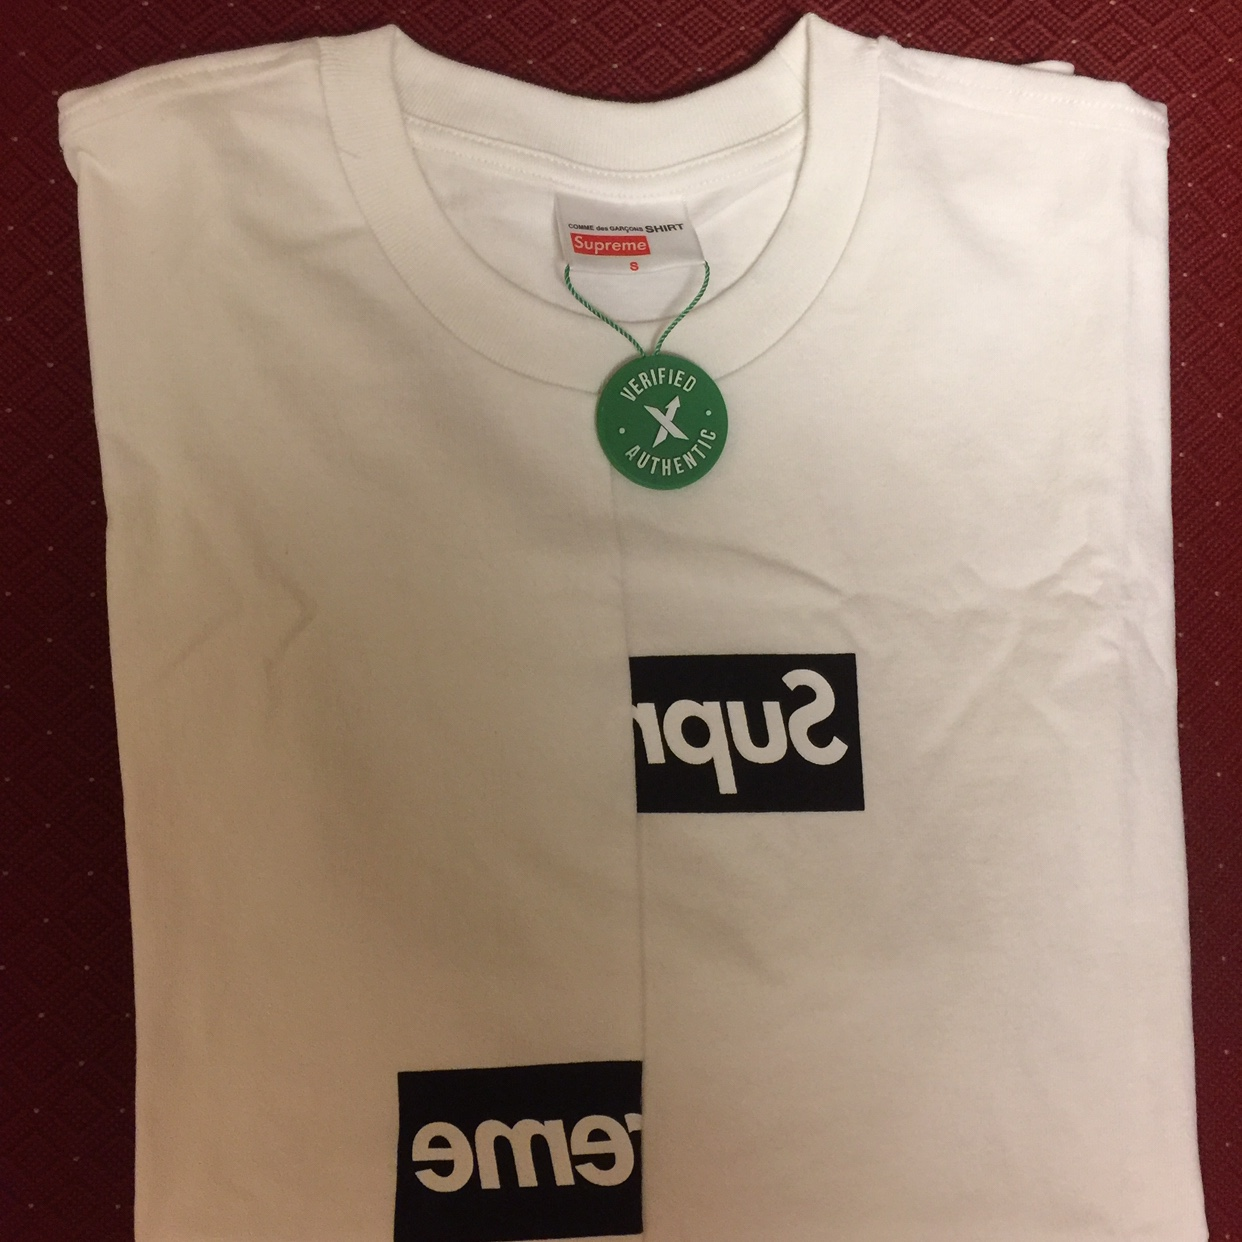 e3354940 hype4salefl. Tallahassee, United States. Deadstock Supreme CDG box ...